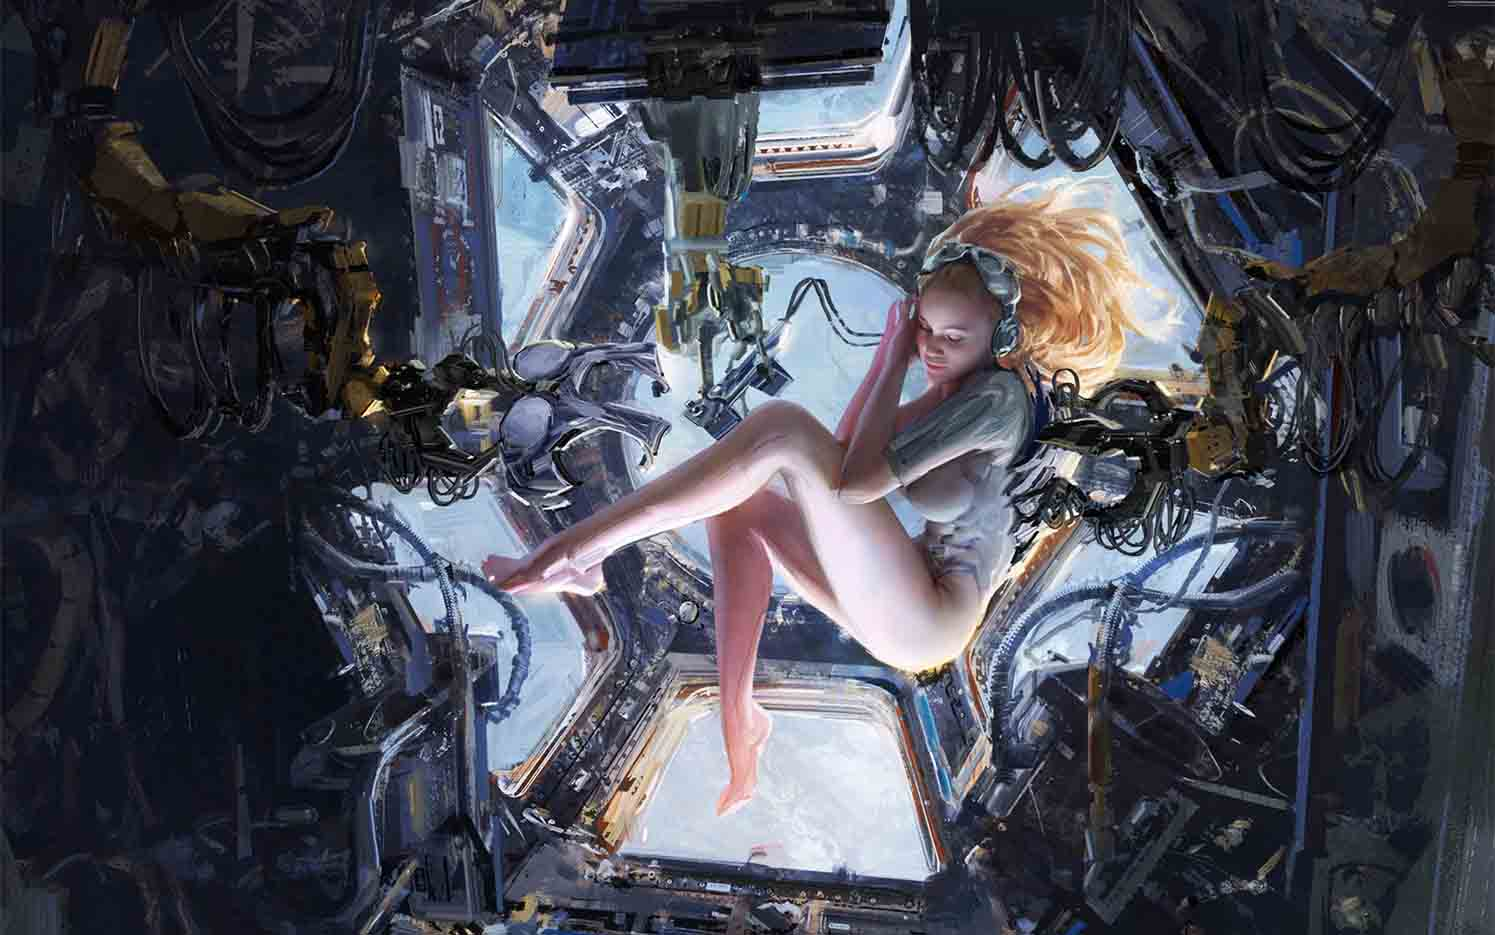 Scifi Sci Fi Sex Hentai Erotic Art Drawing Drawings Pic Pics Pictures Nude Xxx